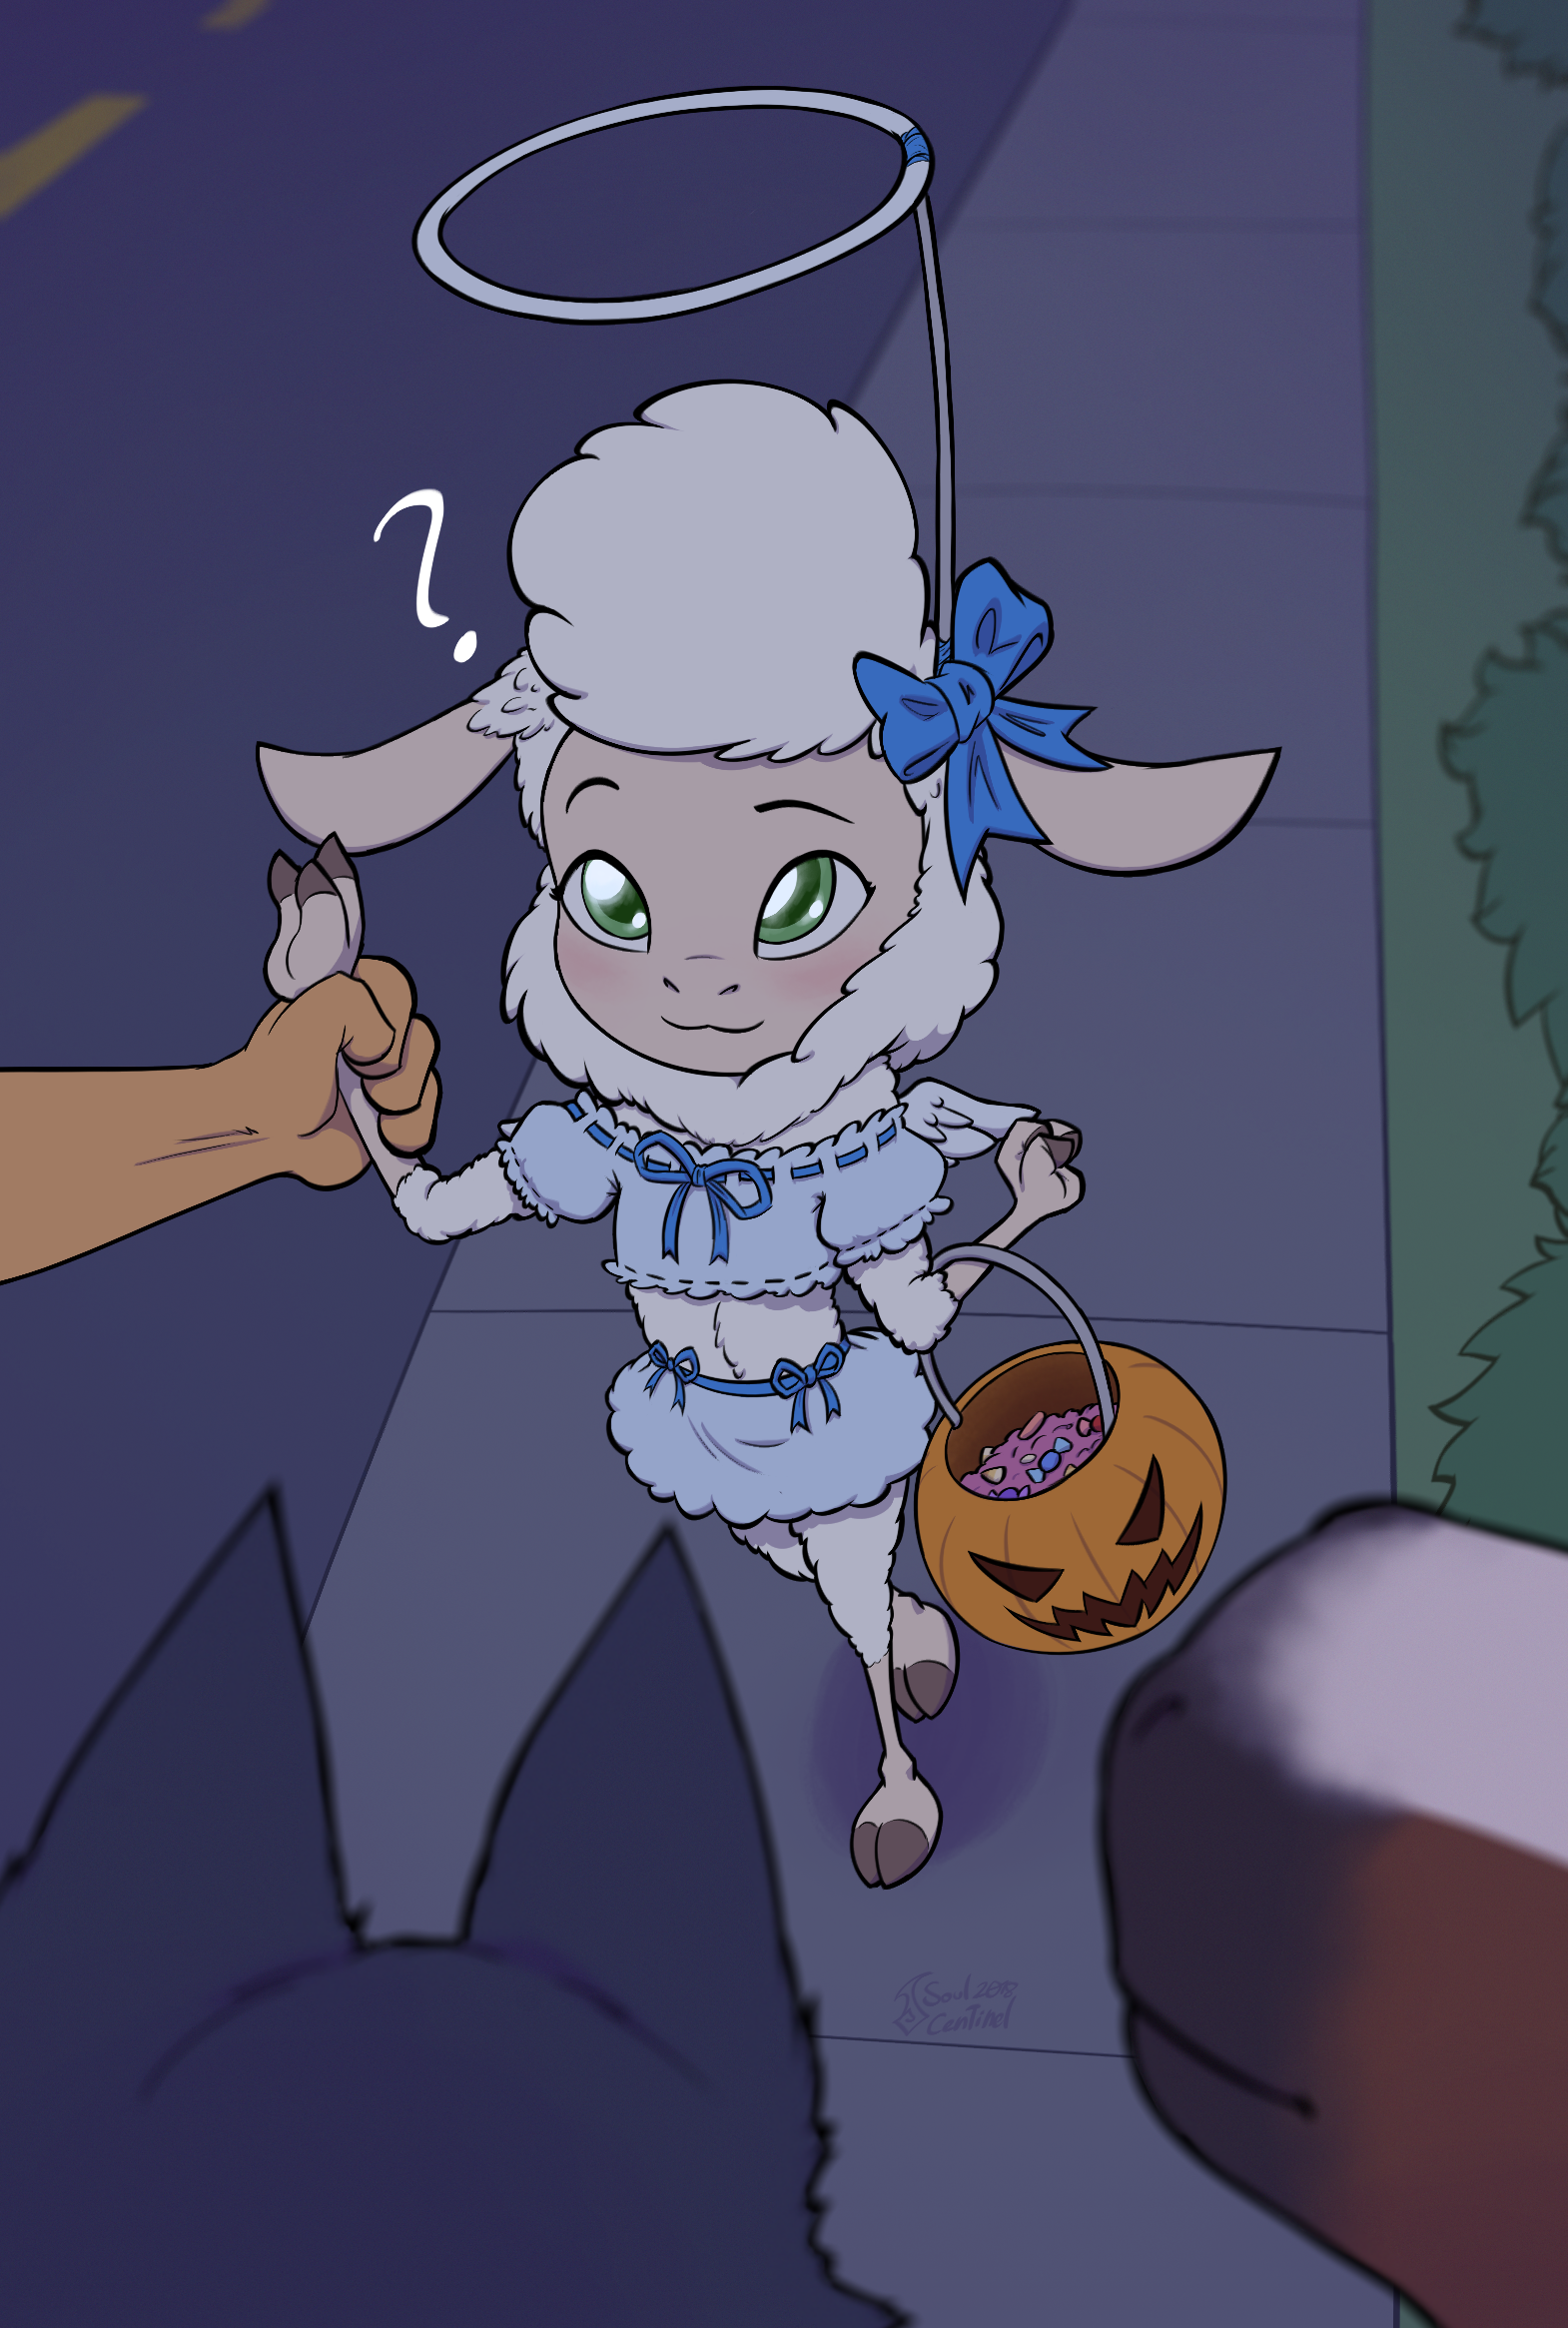 Halloween Bell porn comics Oral sex, Anal Sex, Blowjob, Creampie, Cum Shots, Domination, Double Penetration, Furry, Group Sex, Kidnapping, Lolicon, Straight